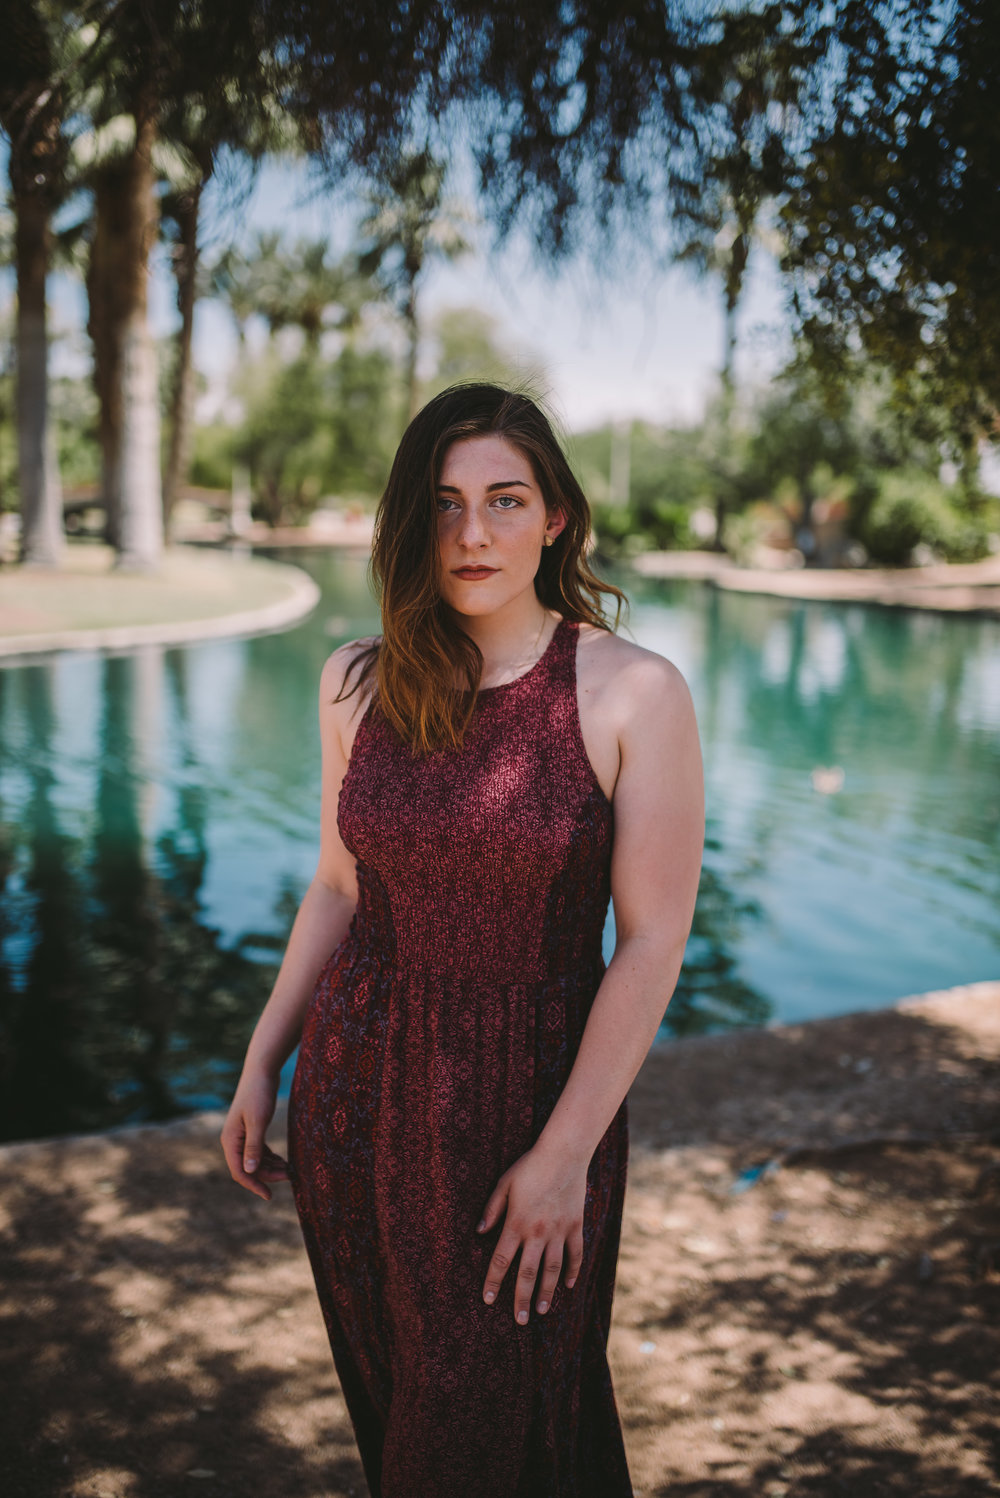 EmilyKidd_PhoenixArizona_June2018_Senior Photography In Phoenix Arizona_ArizonaSeniorPhotographer_SamanthaRosePhotography_BLOG_024.JPG